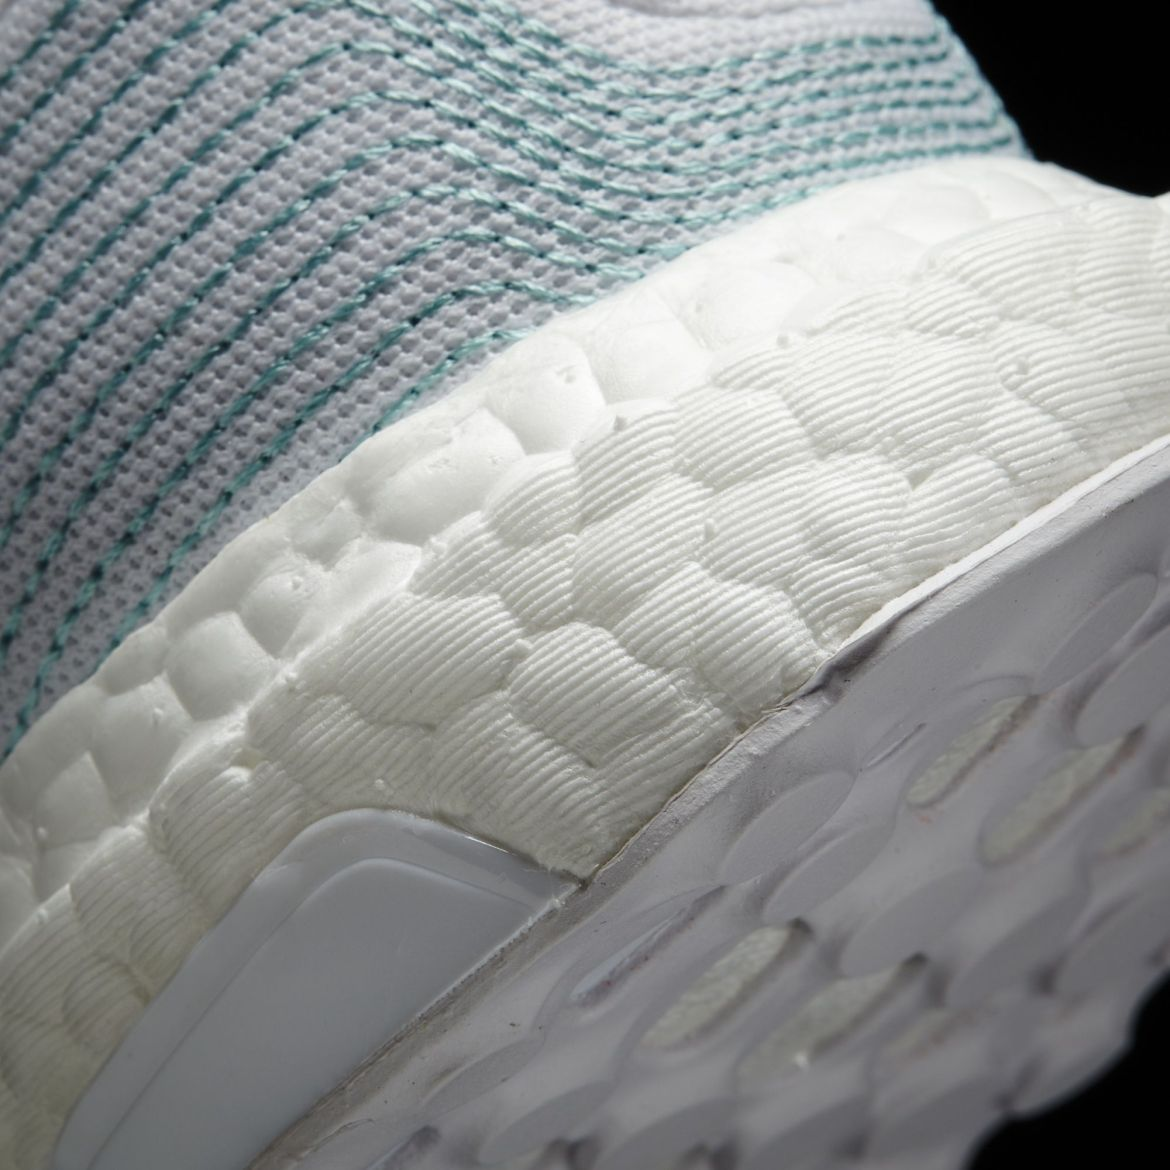 Parley x adidas Ultra Boost Uncaged 7